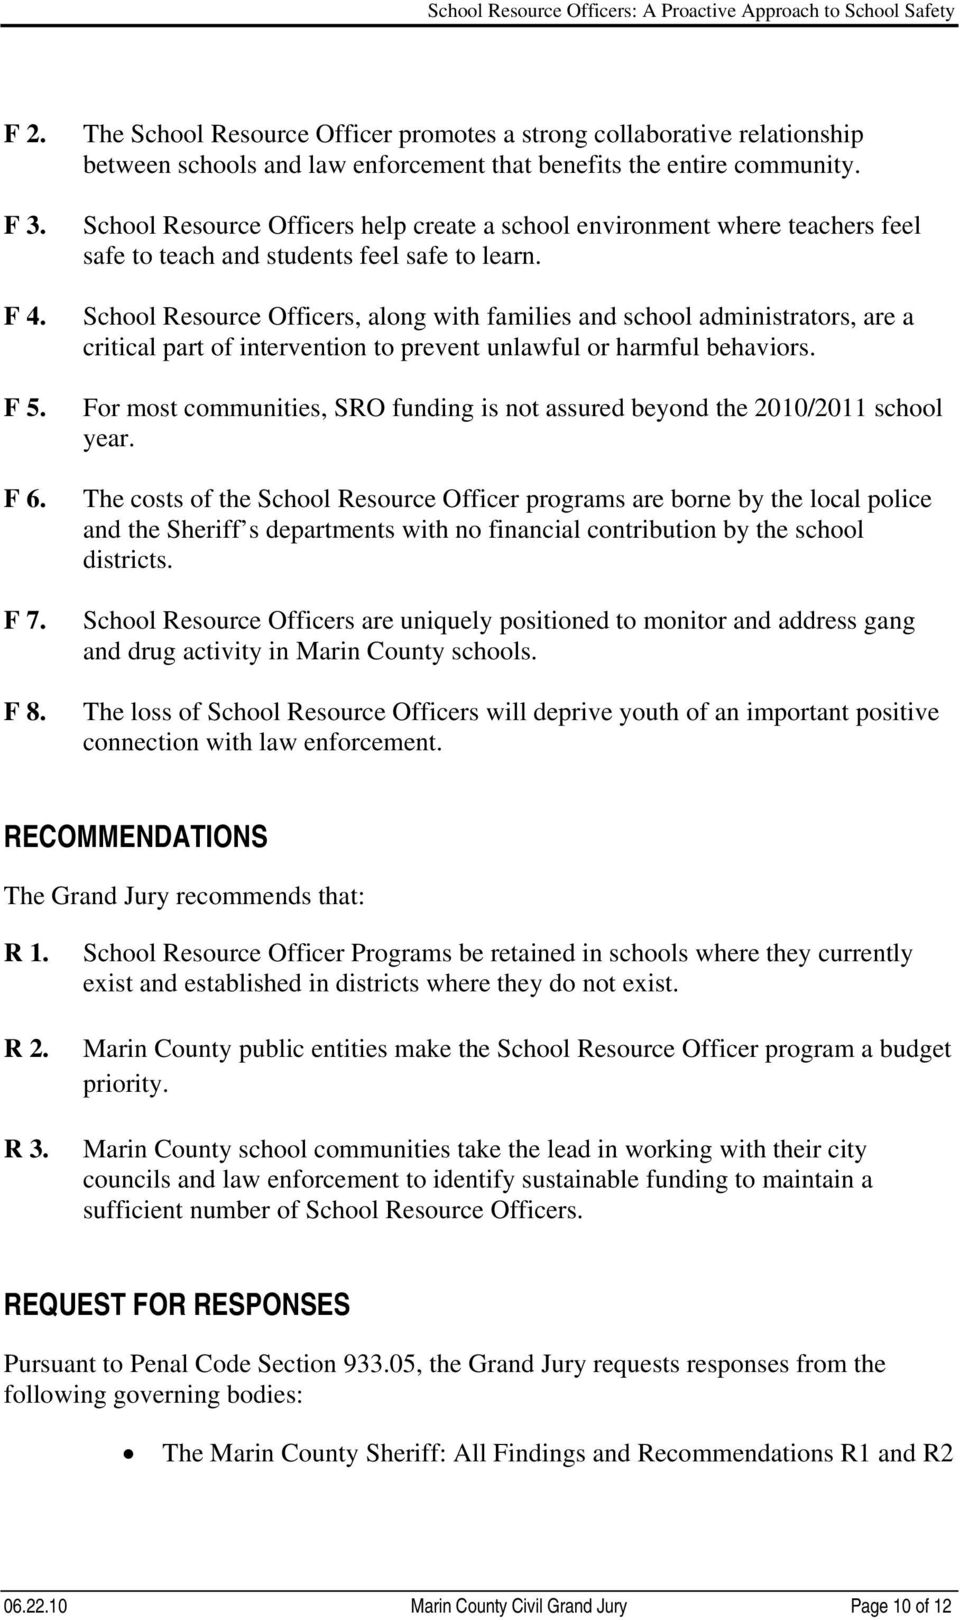 School Resource Officers, along with families and school administrators, are a critical part of intervention to prevent unlawful or harmful behaviors.